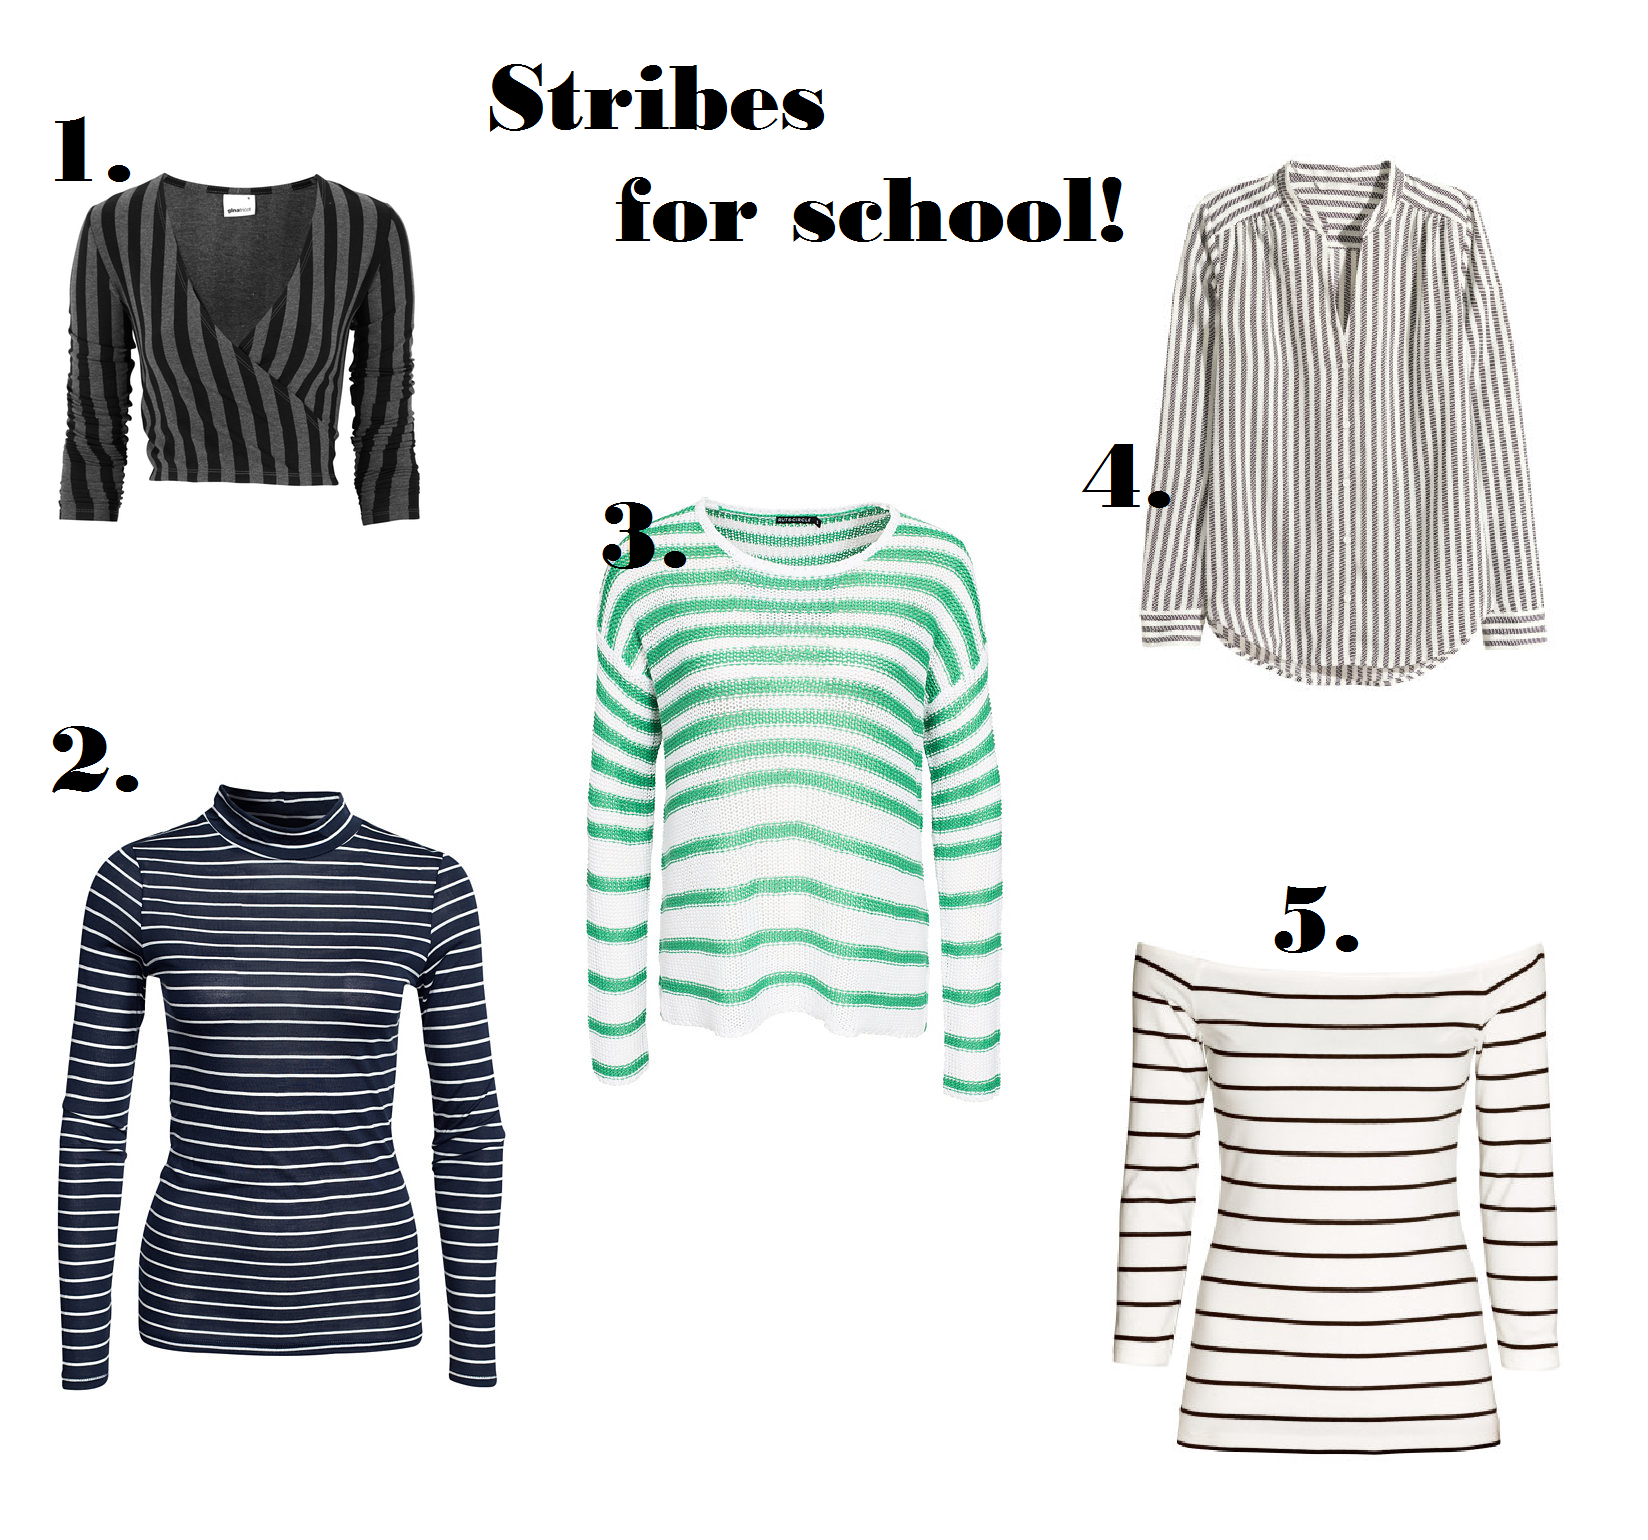 Stribes for school